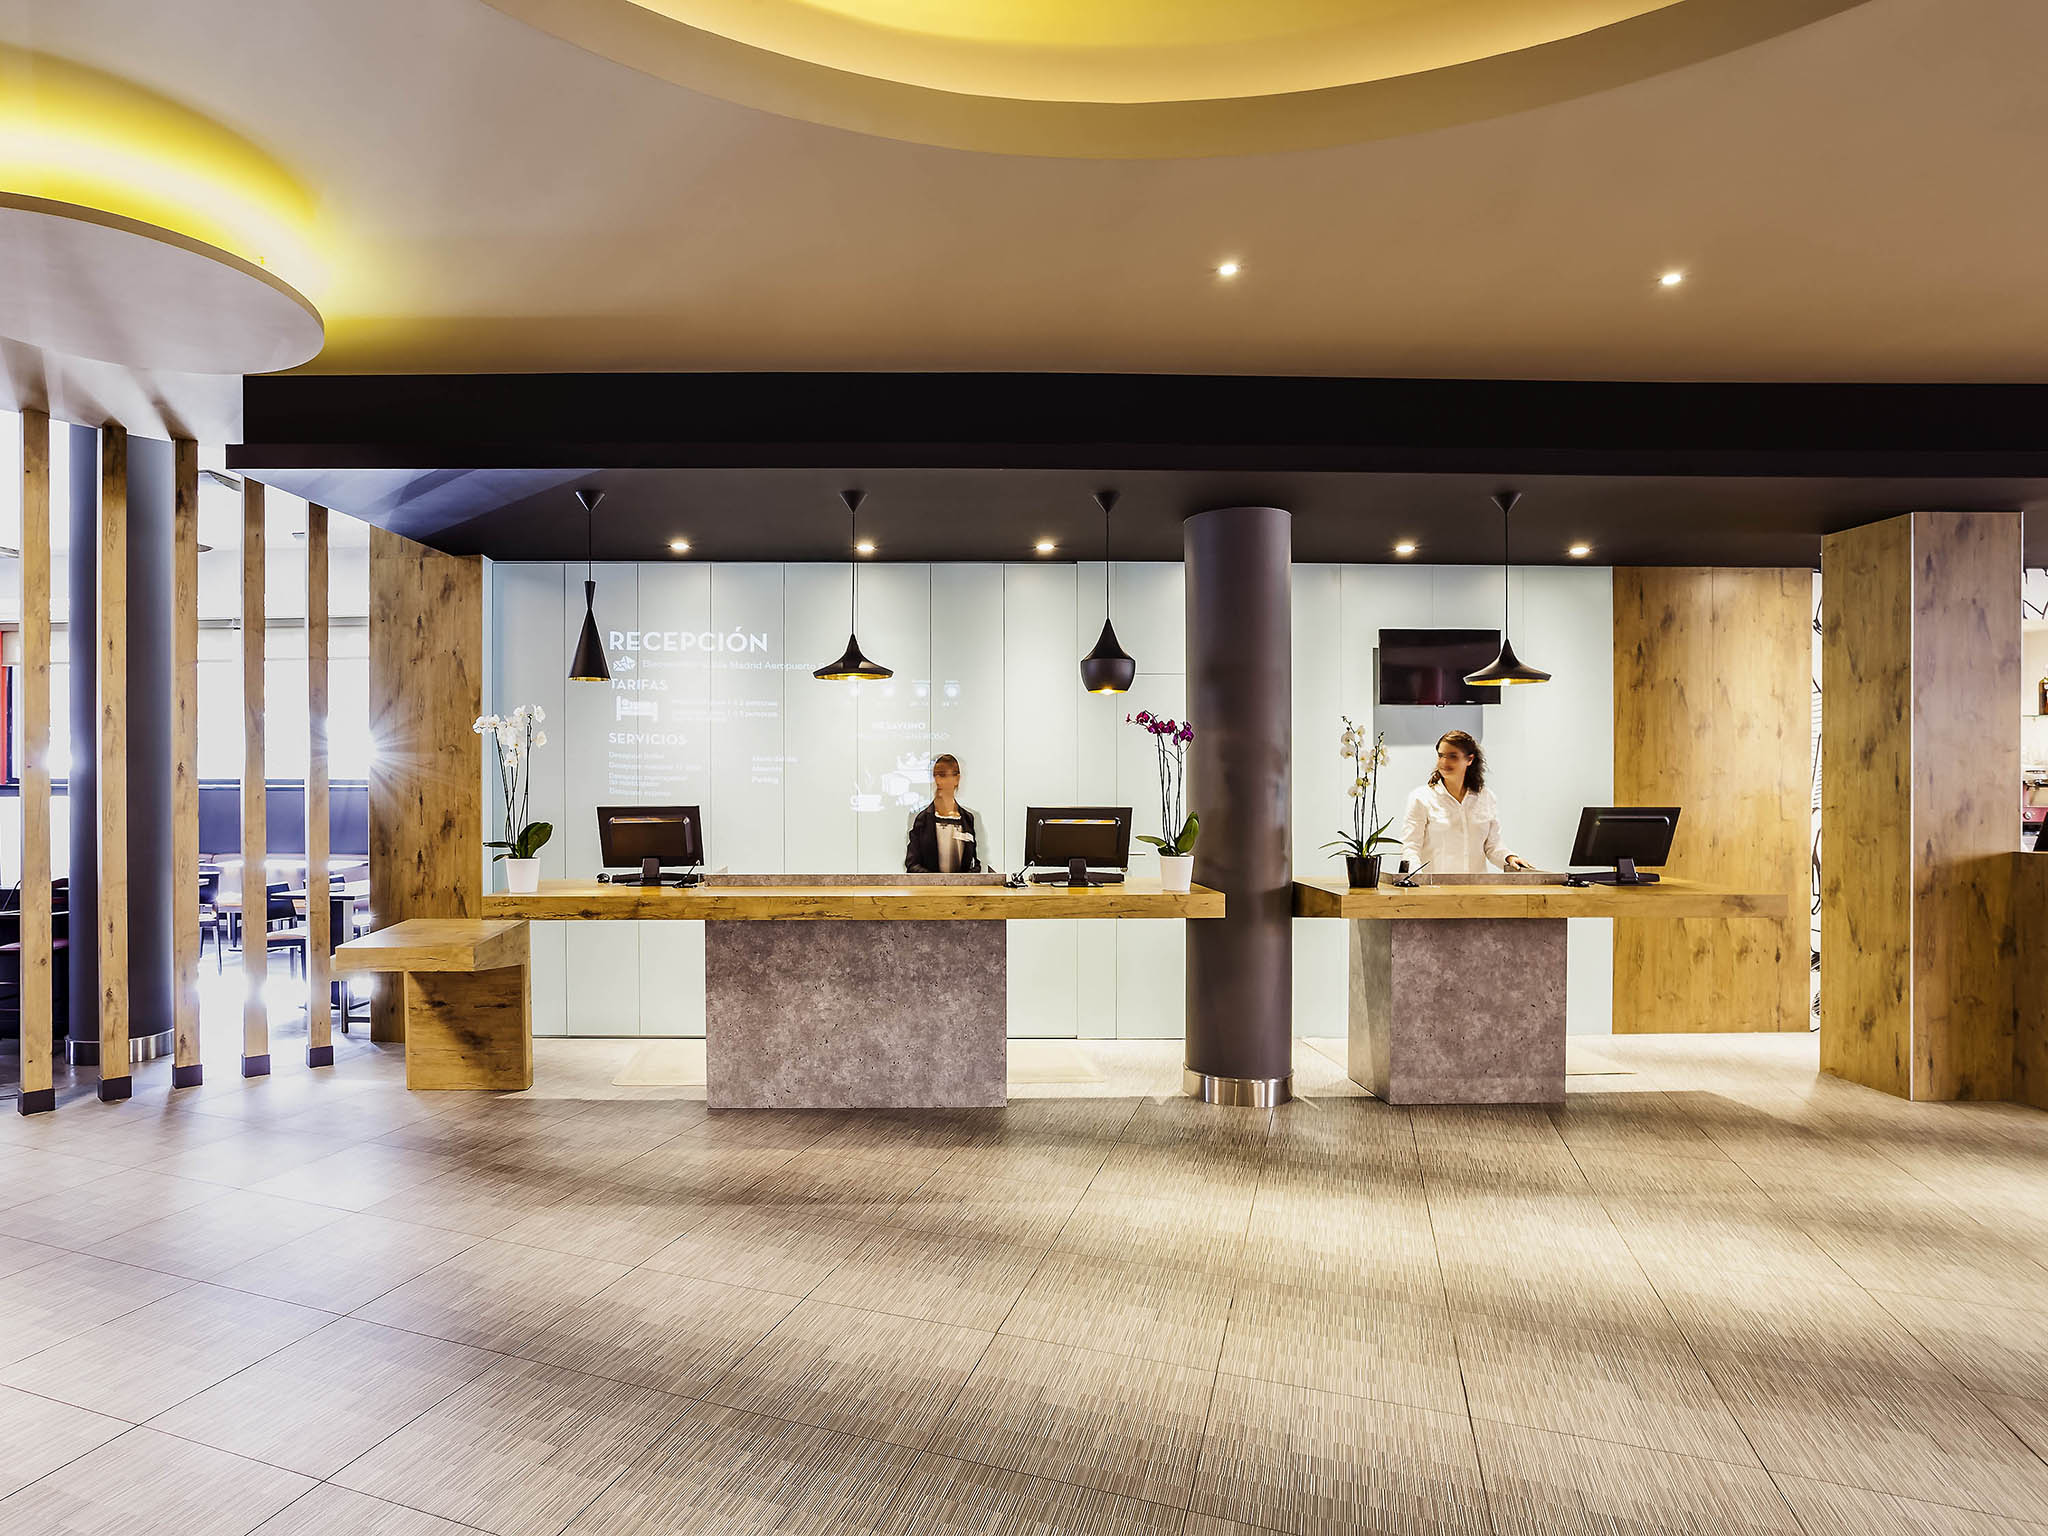 Hotel in madrid book at the ibis at madrid barajas airport for Booking madrid hotel